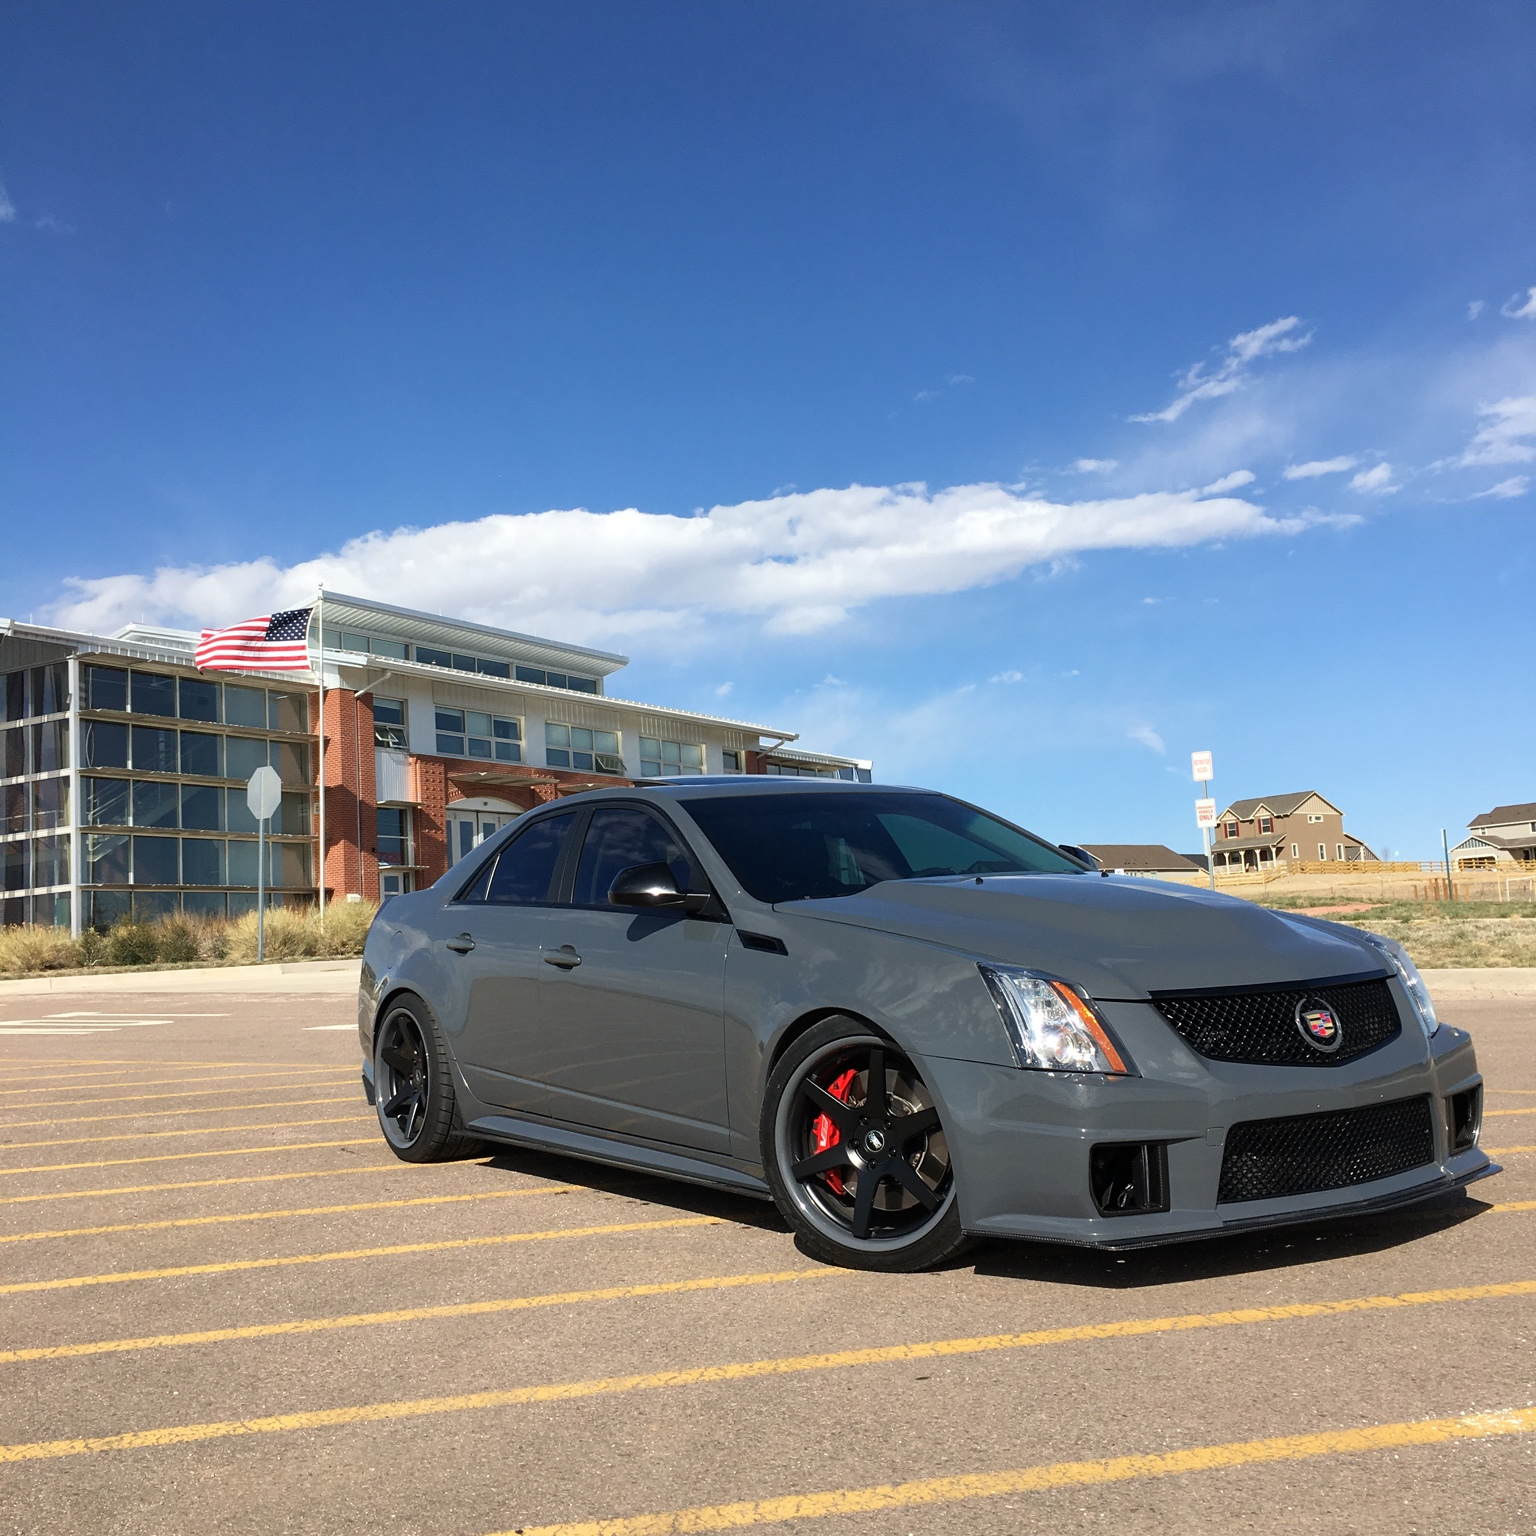 2013 Grigio Telesto CTS-V ~800 RWHP Boost Only